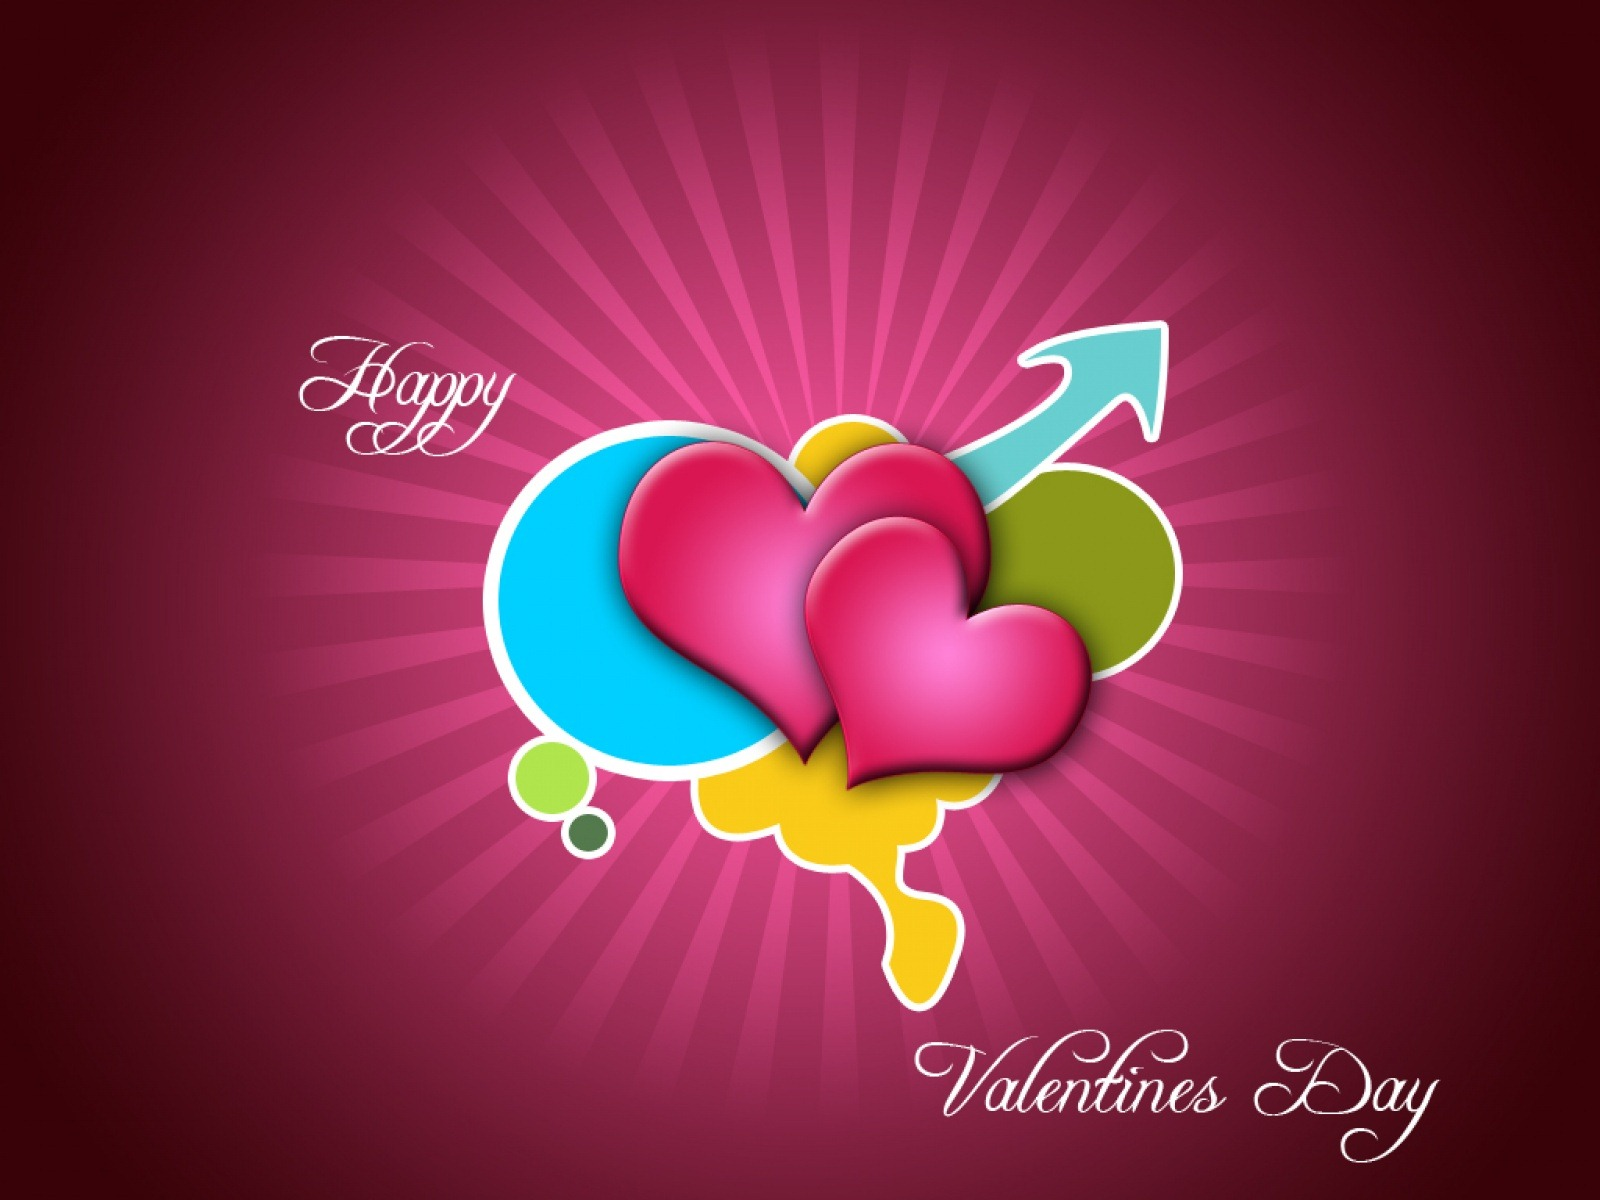 valentine wallpapers for my desktop - wallpapersafari